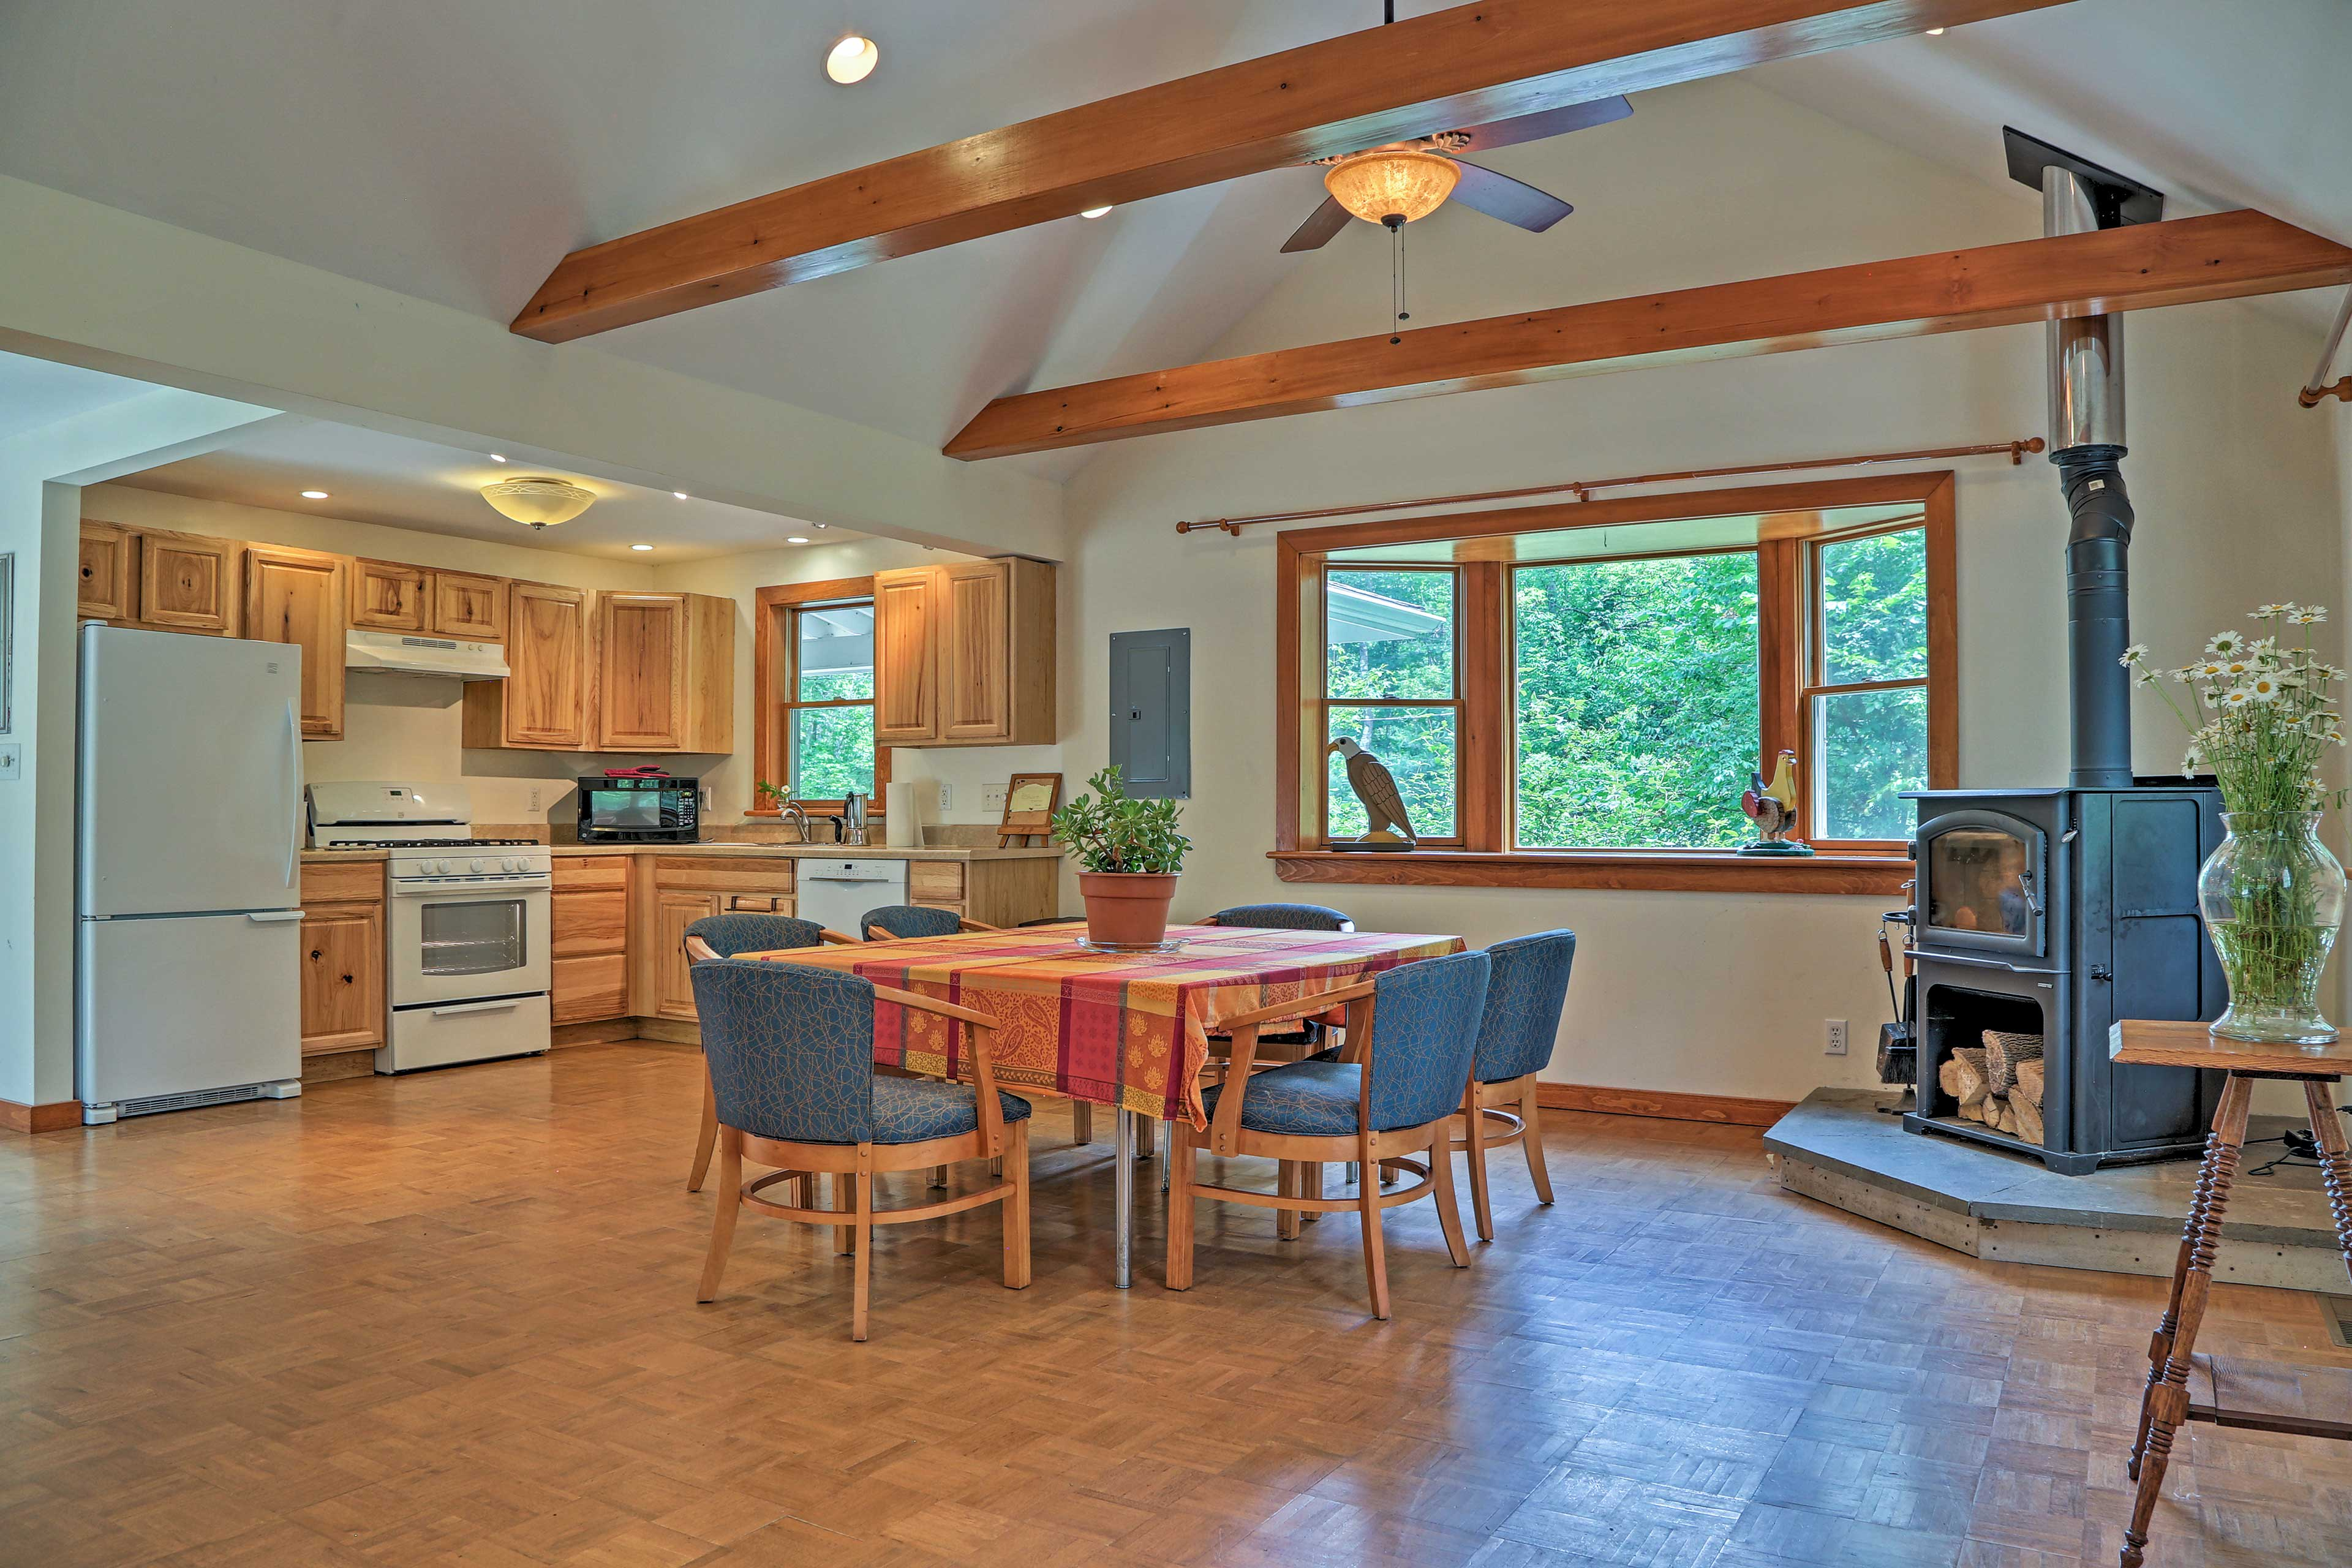 Dine at the 6-person table while the wood-burning stove warms the room.